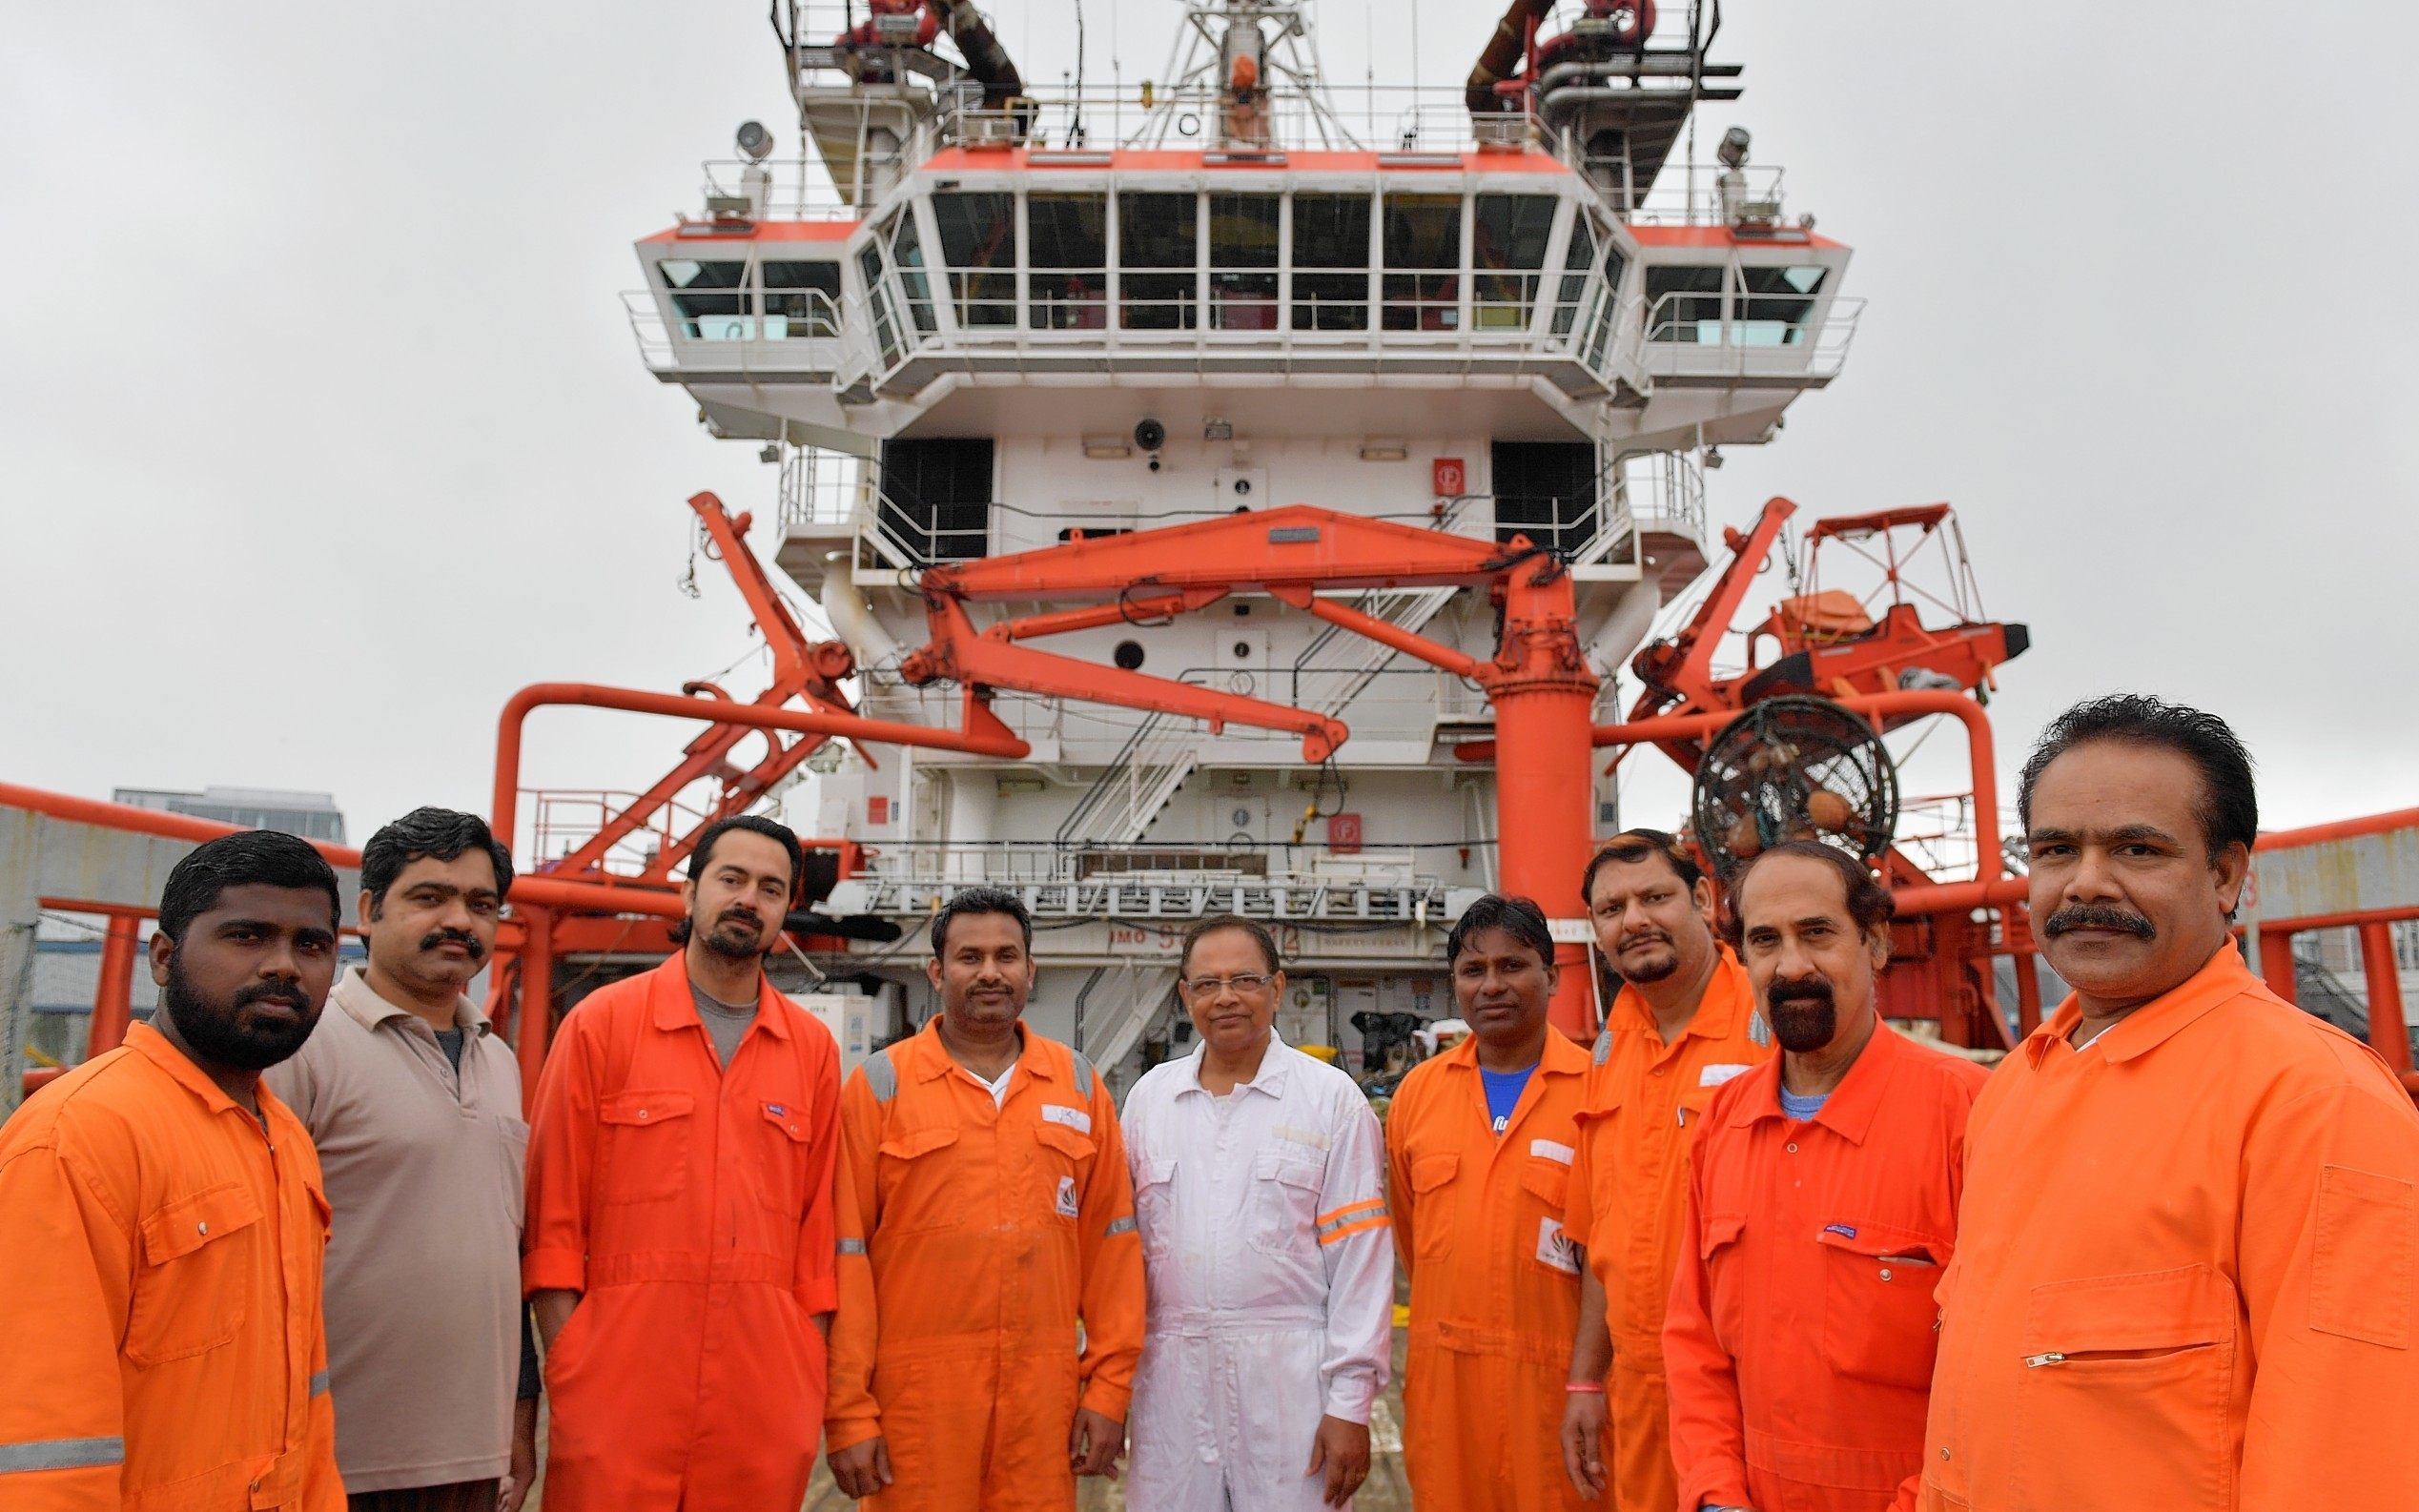 The crew of the Indian owned Malaviya Seven offshore vessel which has been detained in Aberdeen since last year for non payment of wages, are waiting on a court hearing which could decide if they can go home.    Pictured - Some of the twelve man crew on the vessel.